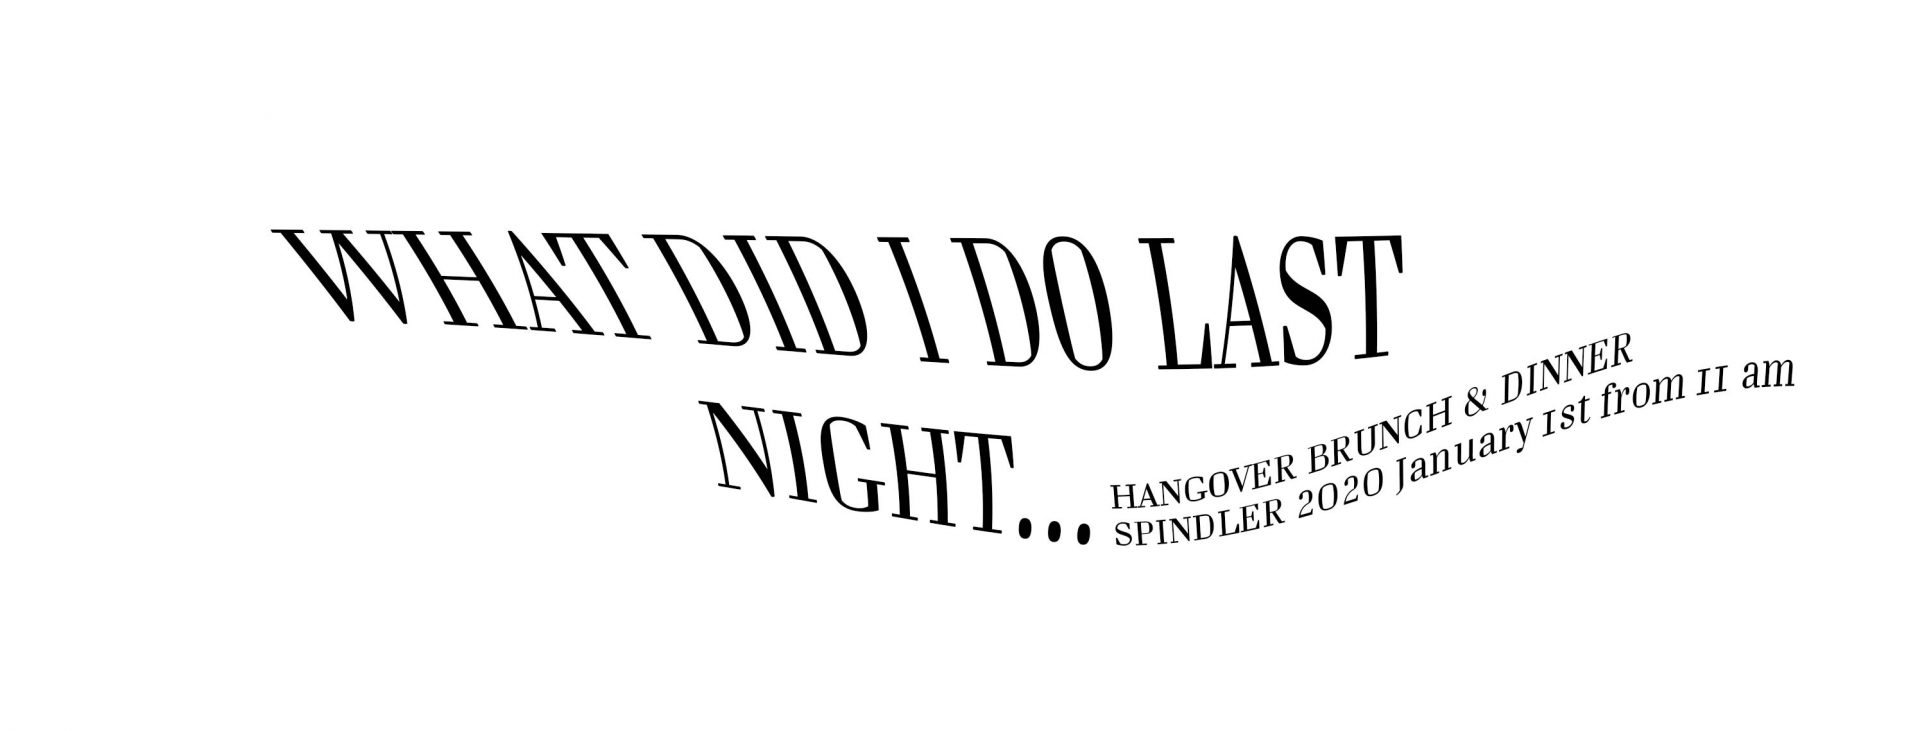 Spindler Berlin Neujahrsbrunch Dinner Hangover Brunch 2020